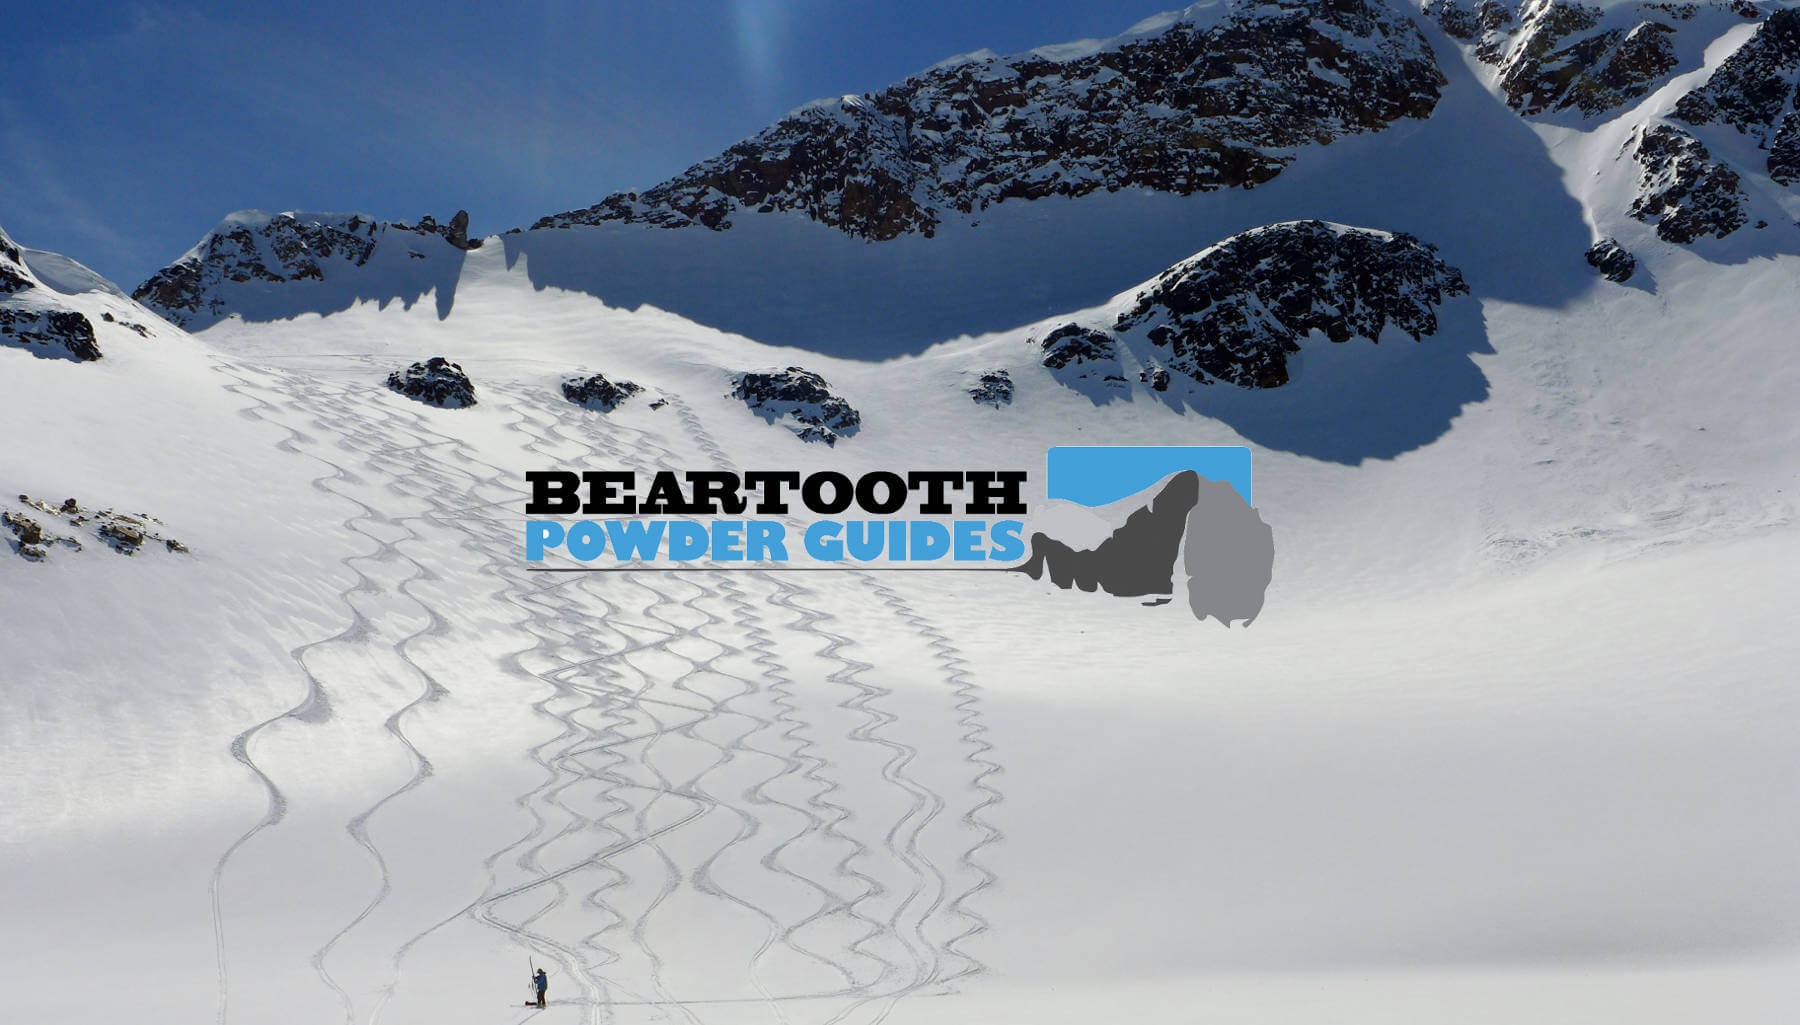 Beartooth Powder Guides